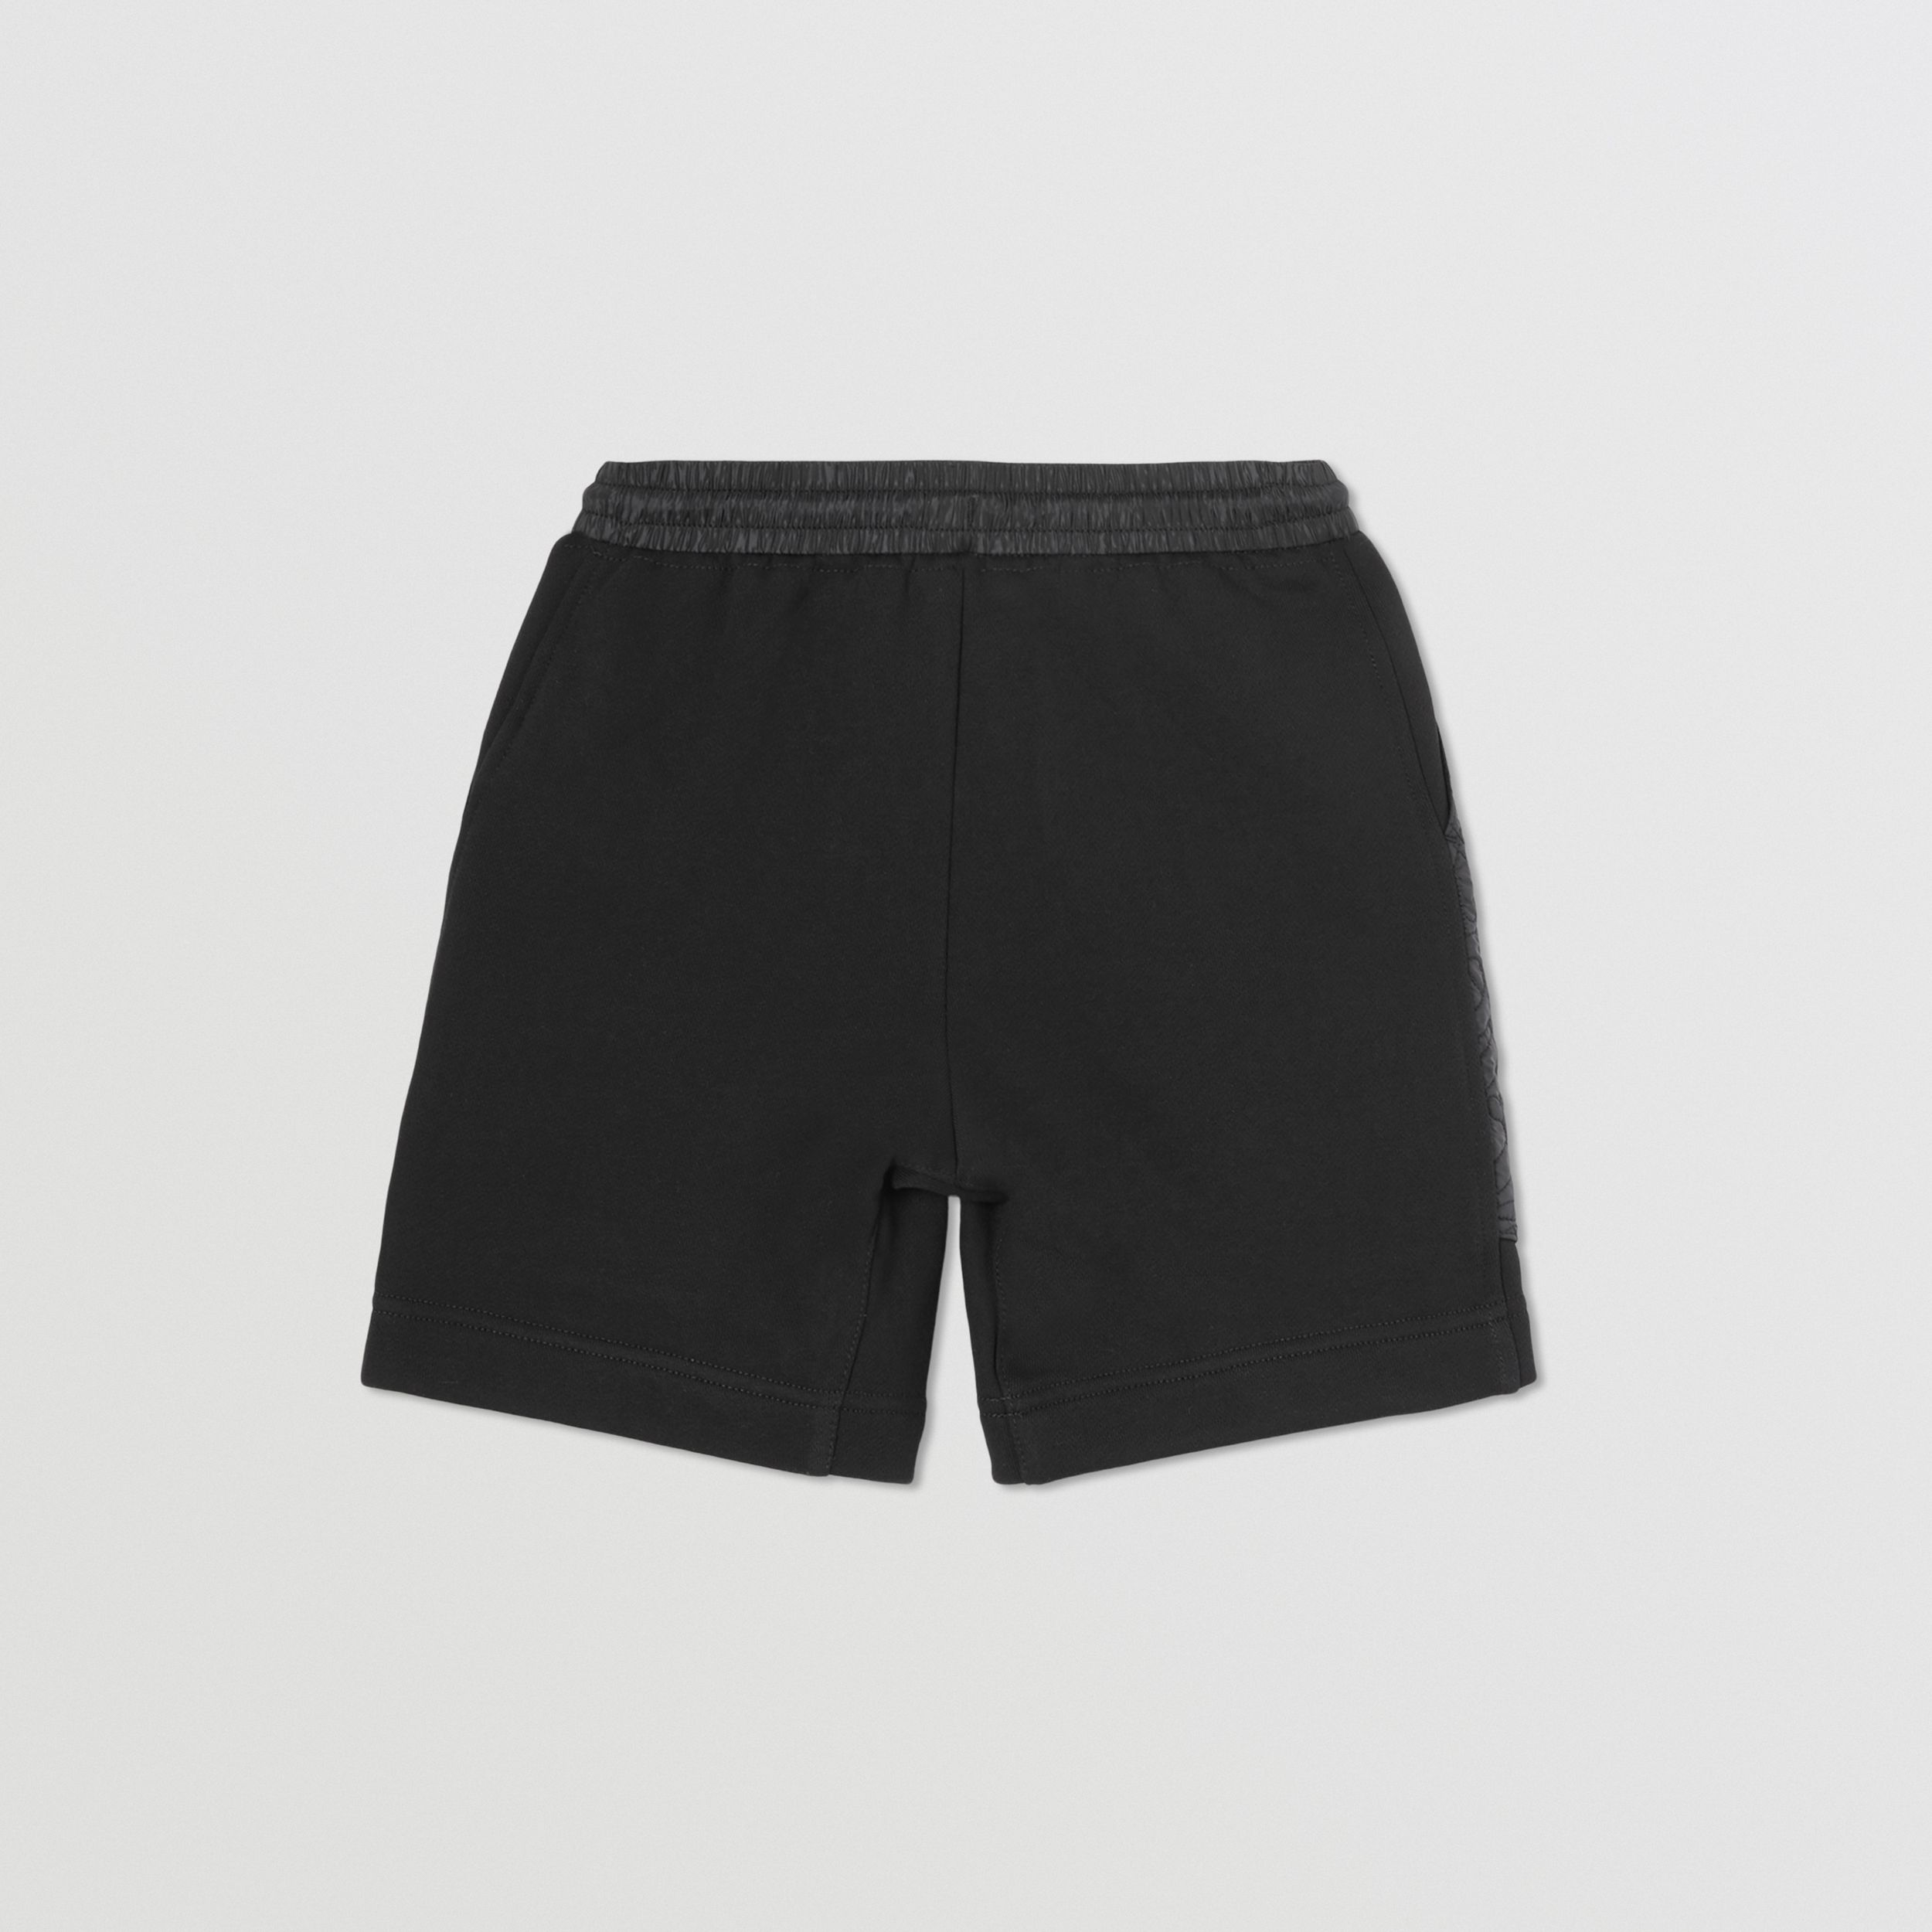 Monogram Quilted Panel Cotton Shorts in Black | Burberry - 4